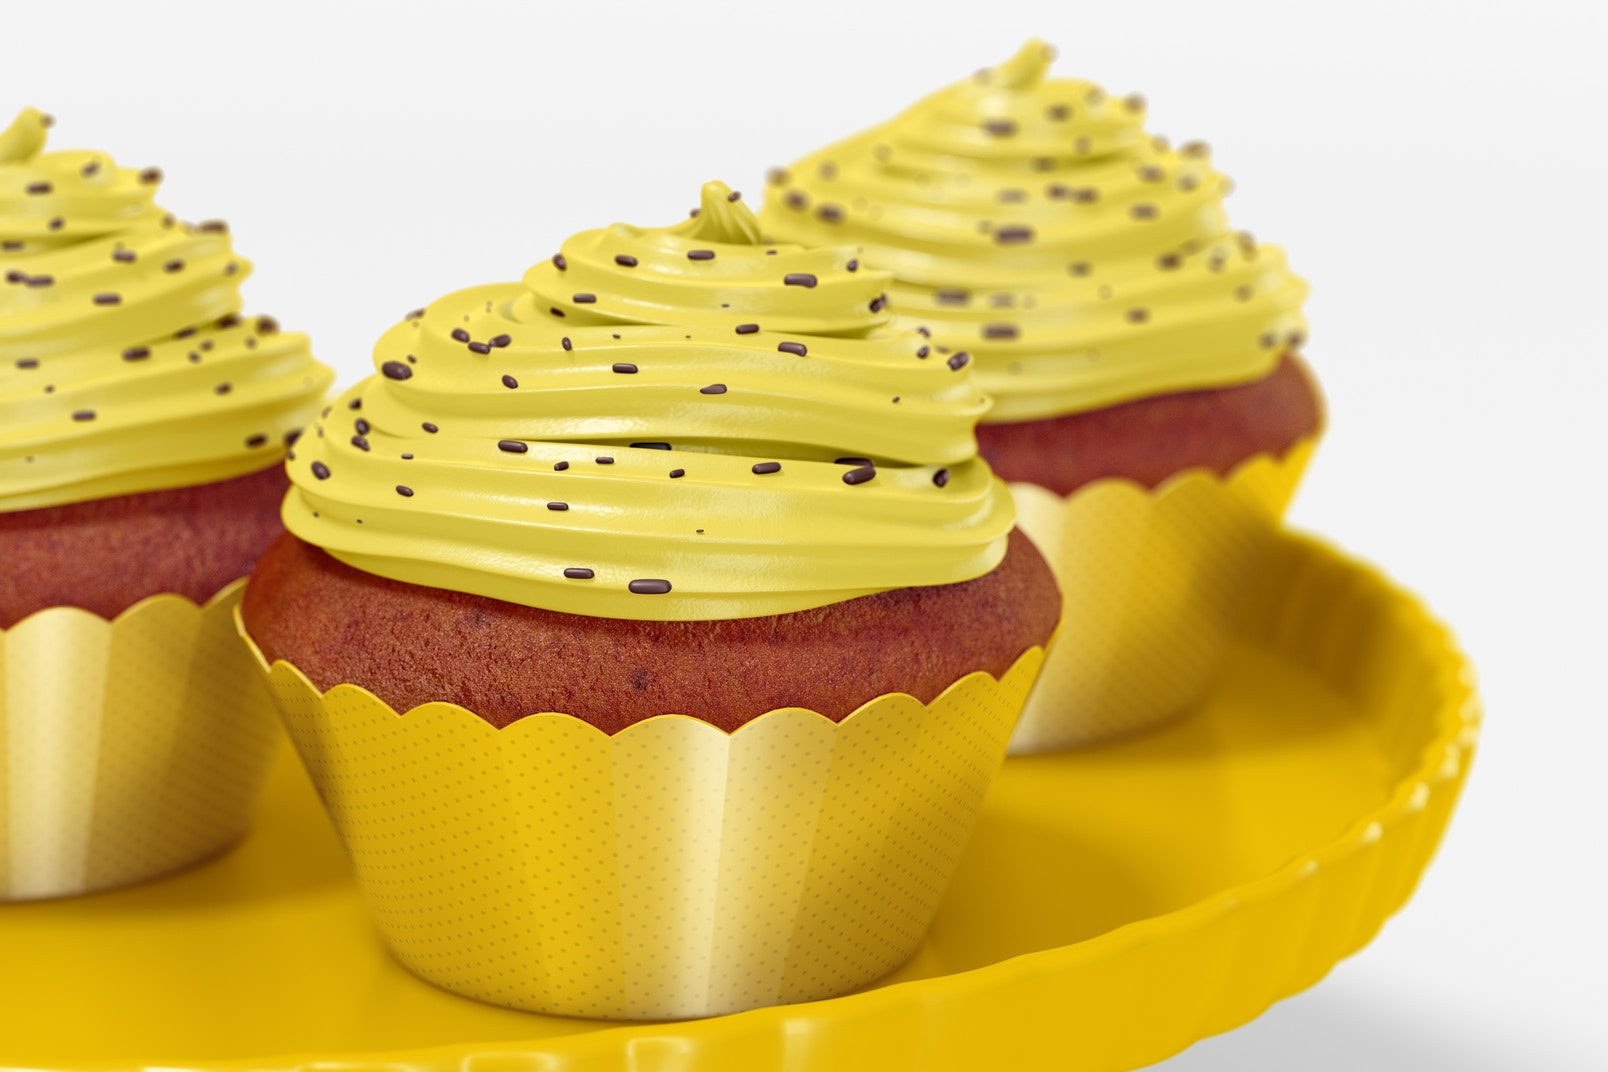 Cupcakes with Wrapper Mockup